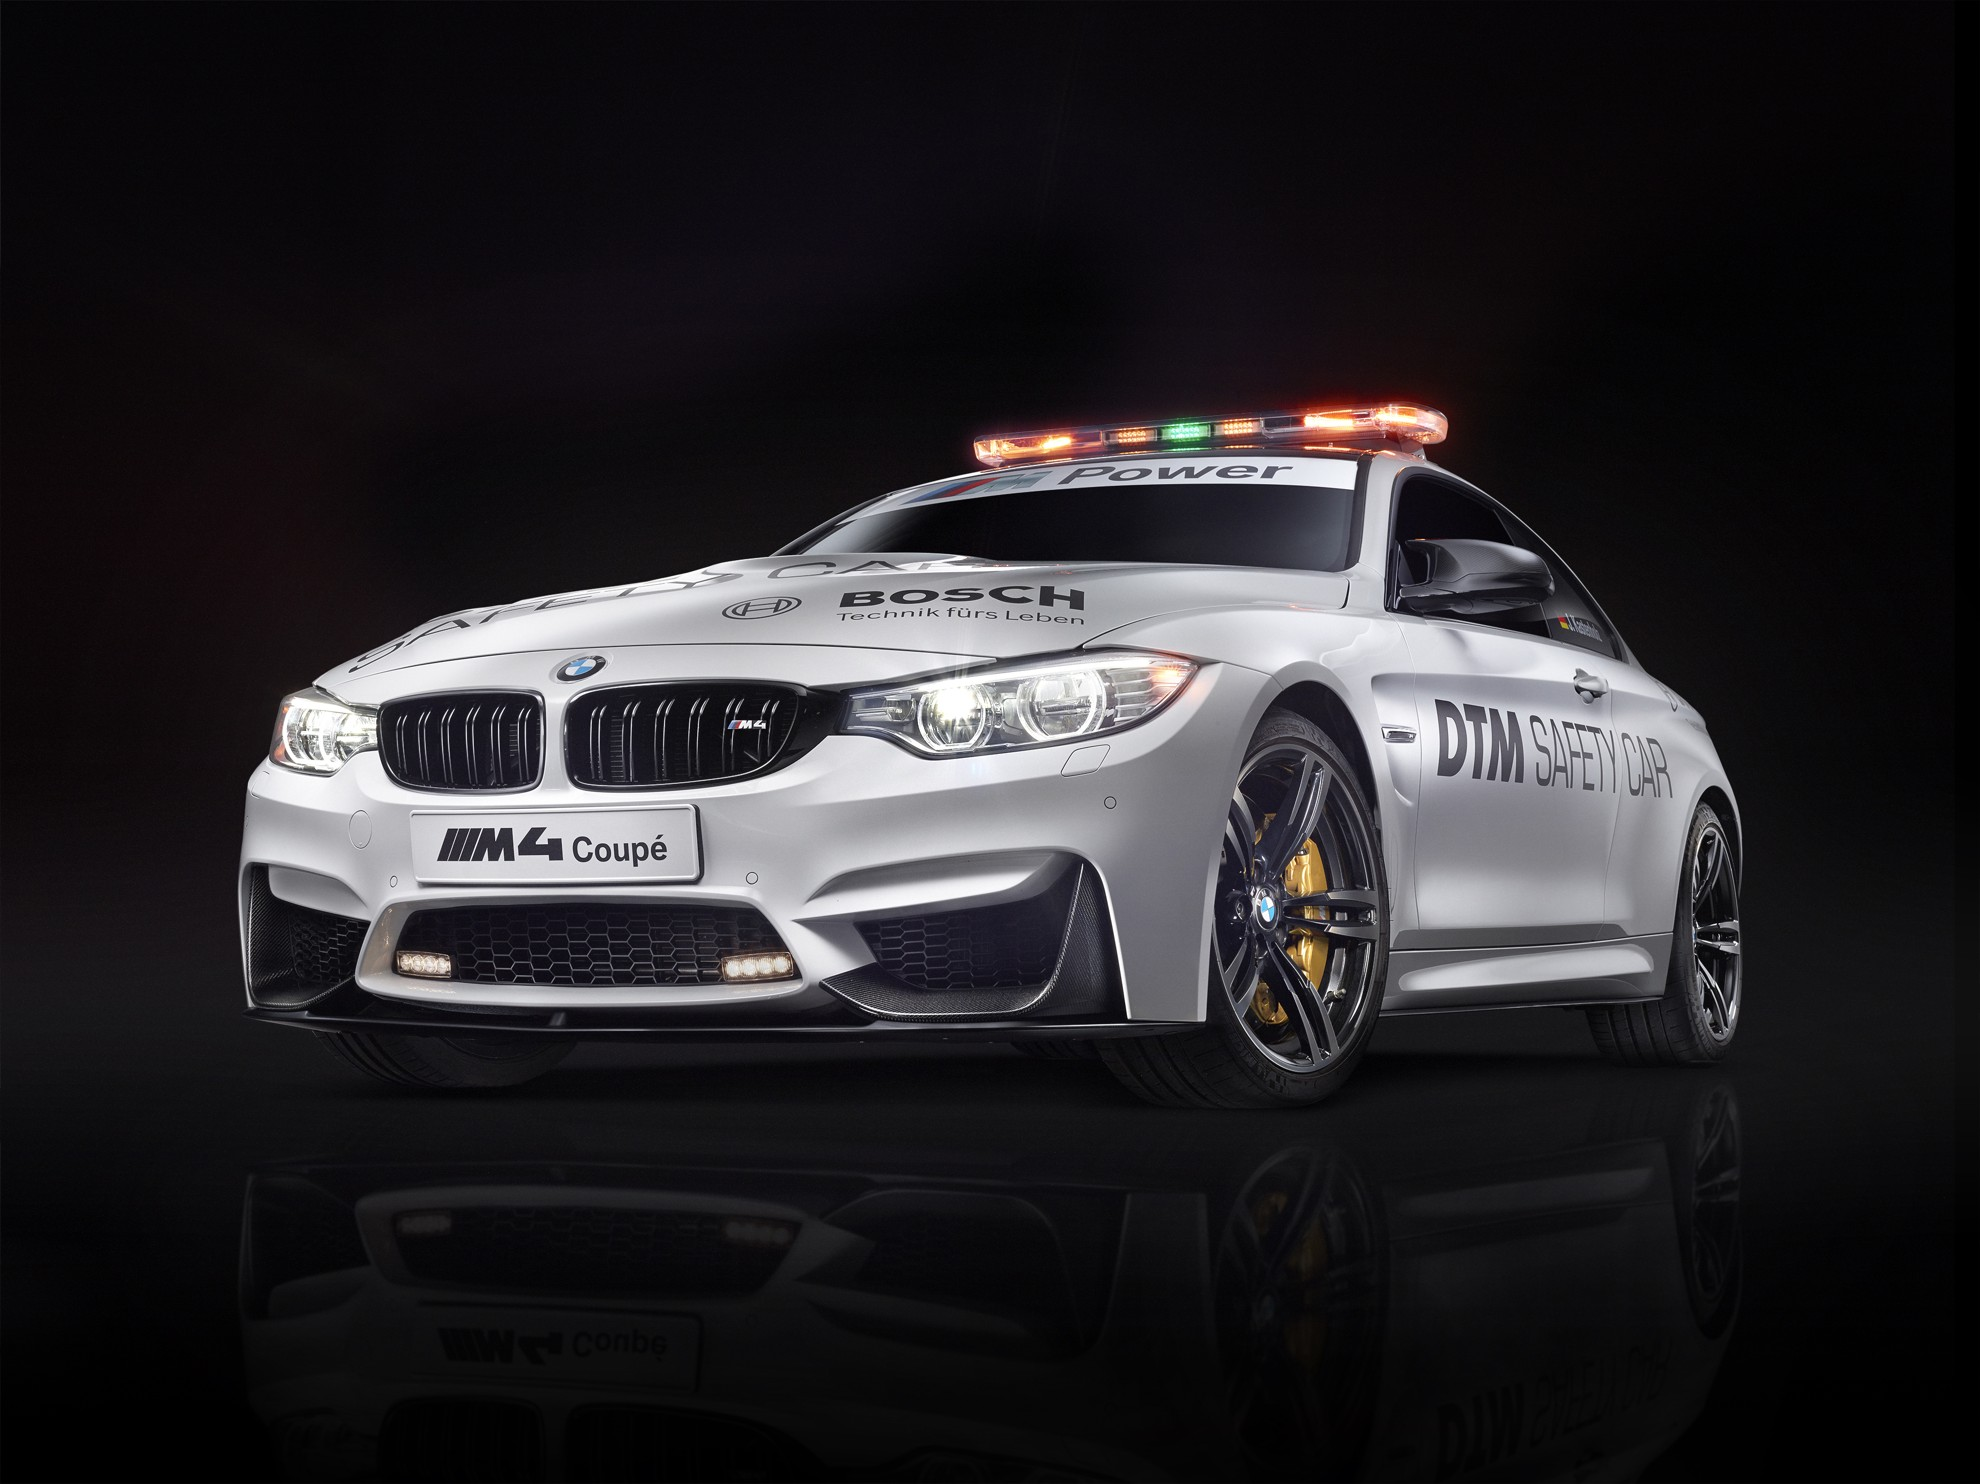 bmw m4 coup dtm safety car. Black Bedroom Furniture Sets. Home Design Ideas